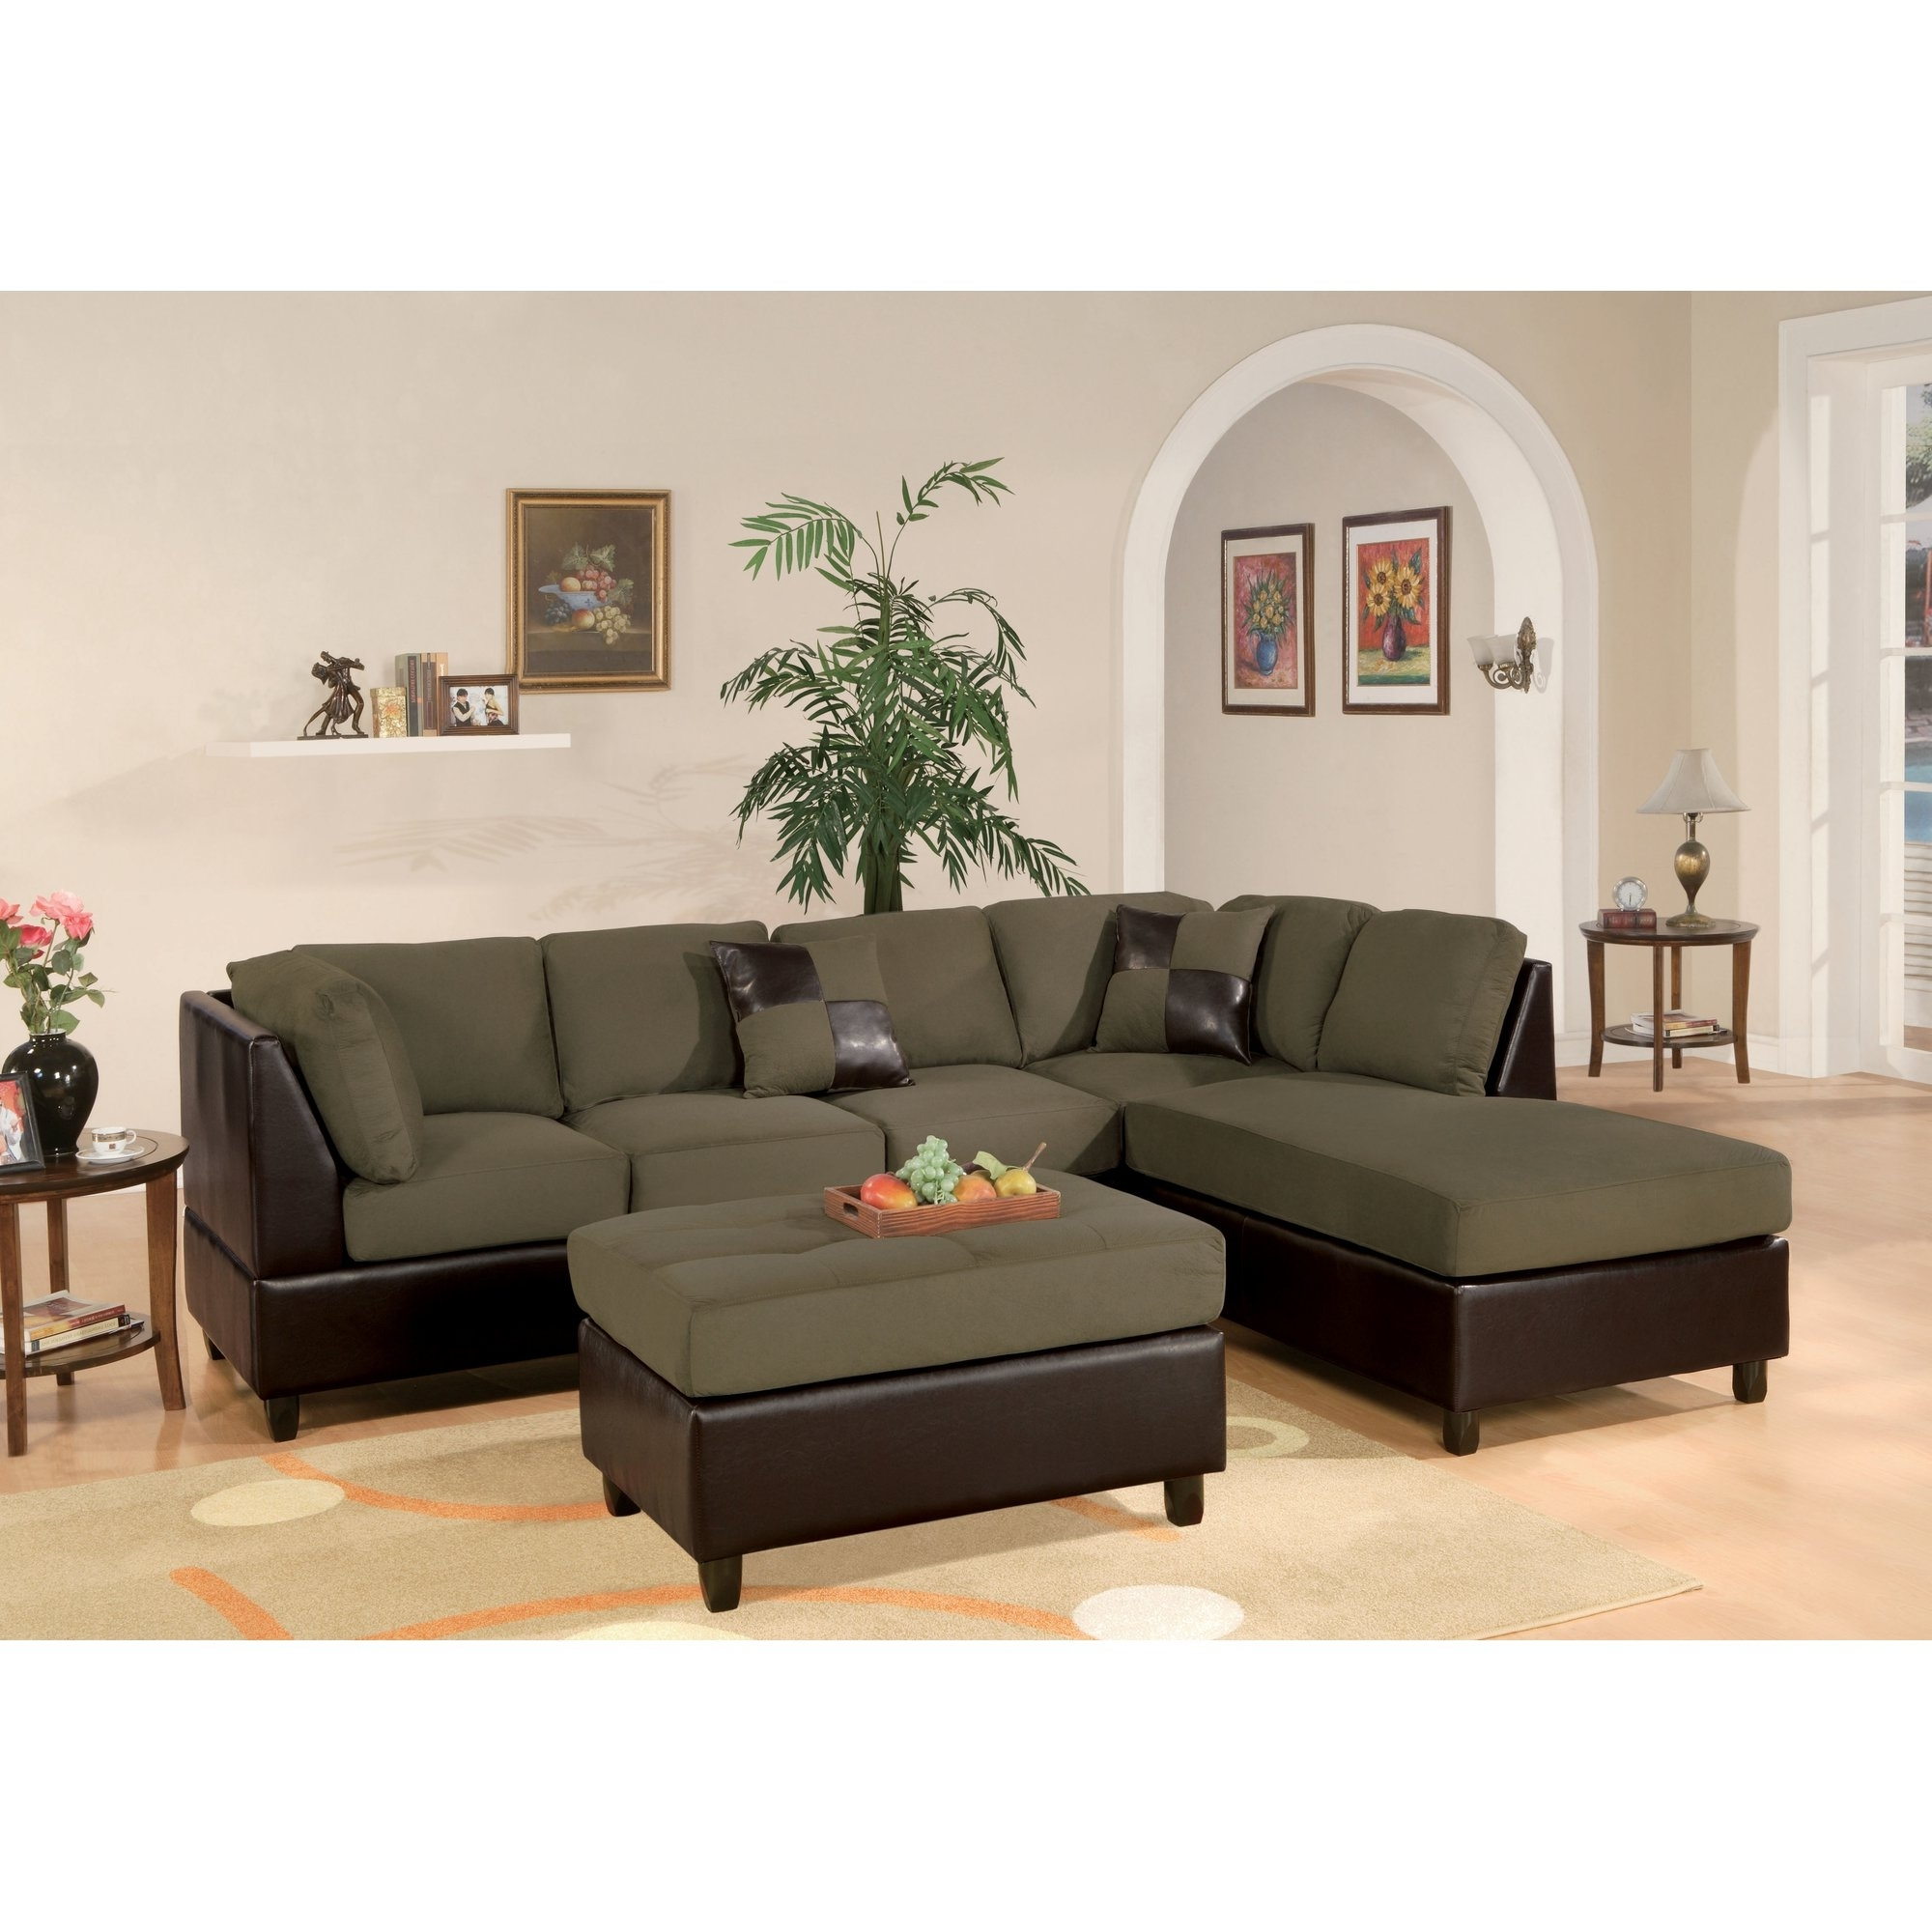 Furniture : Best Sectional Couch 2015 Large Sectional Sofas Uk Within Well Liked 80X80 Sectional Sofas (View 7 of 15)